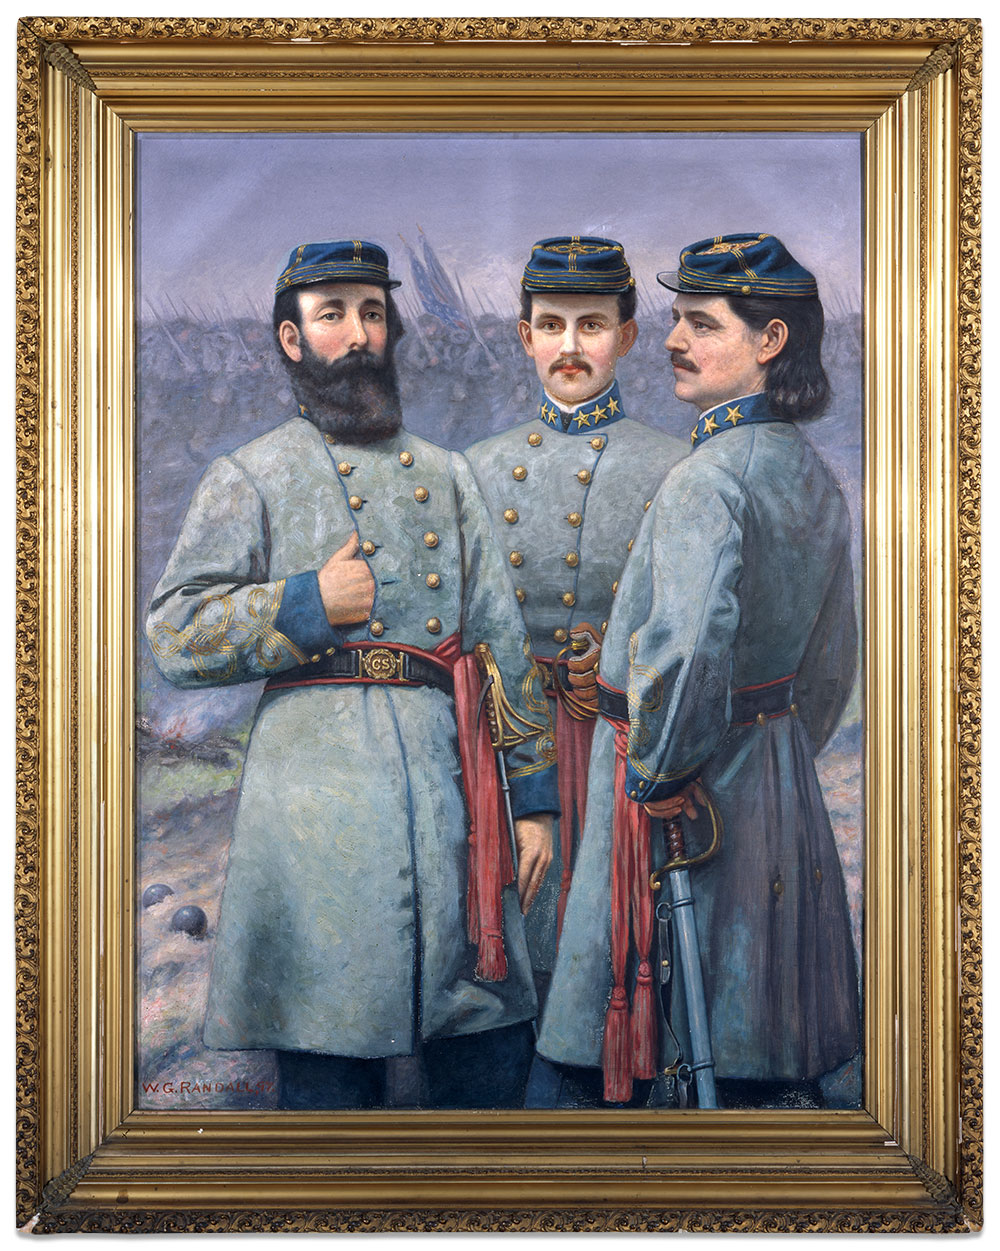 Burgwyn sports a mustache as colonel of the 26th North Carolina Infantry. He is flanked by fellow colonels John Randolph Lane, left, and Zebulon Vance. Painting by William George Randall, 1904, courtesy of the North Carolina Museum of History.